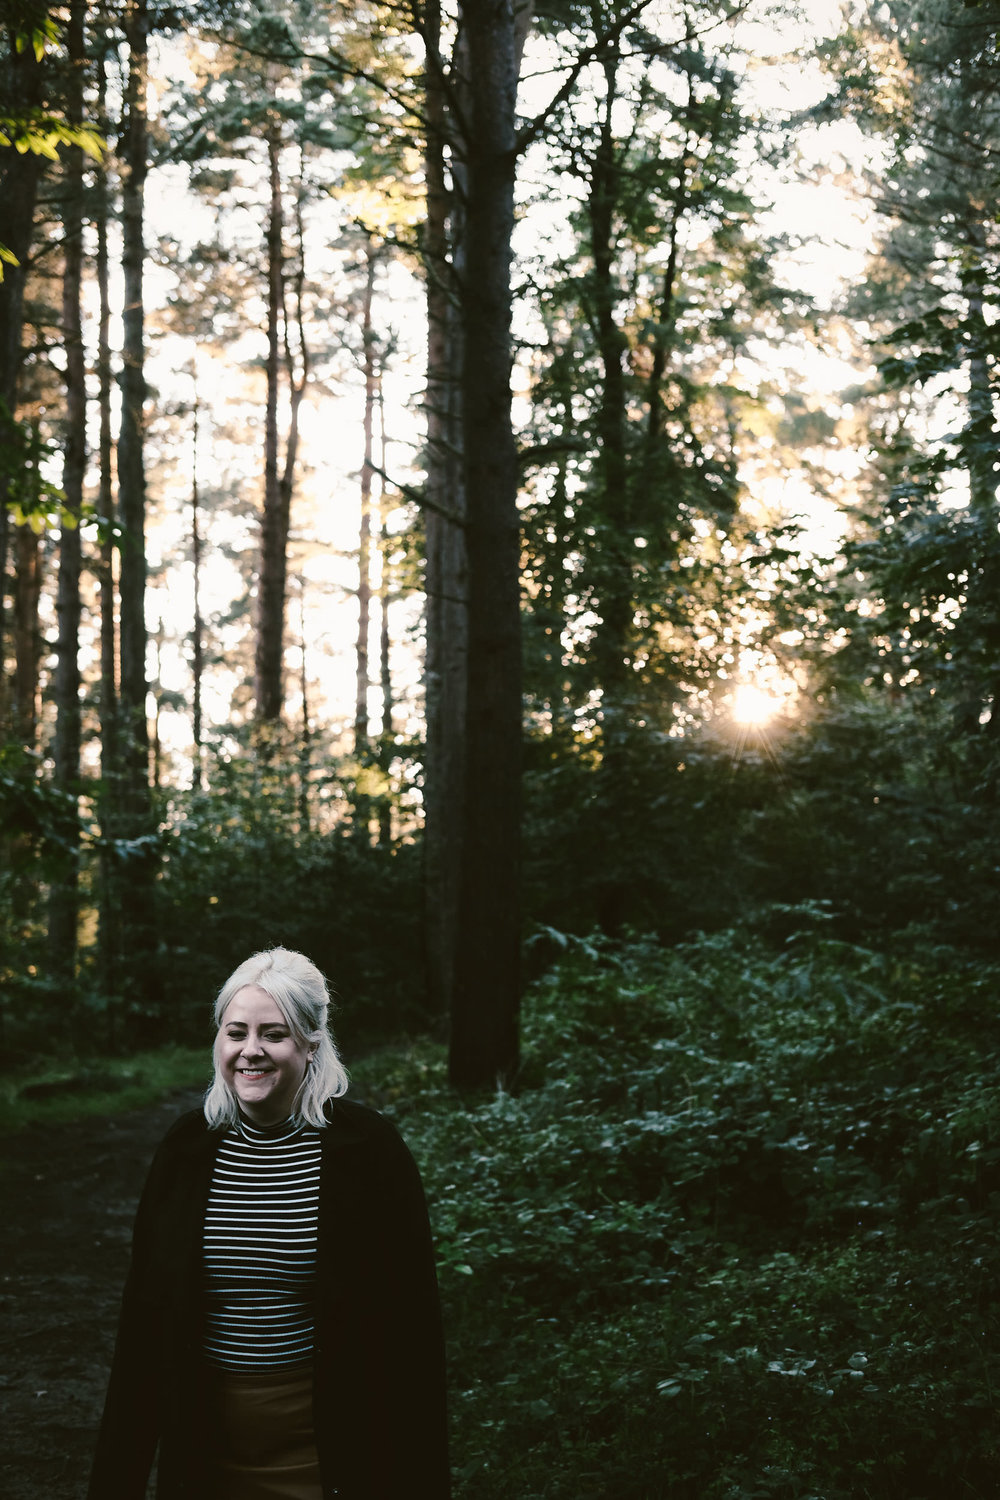 engaged woman laughs with dark forest and light breaking through trees behind